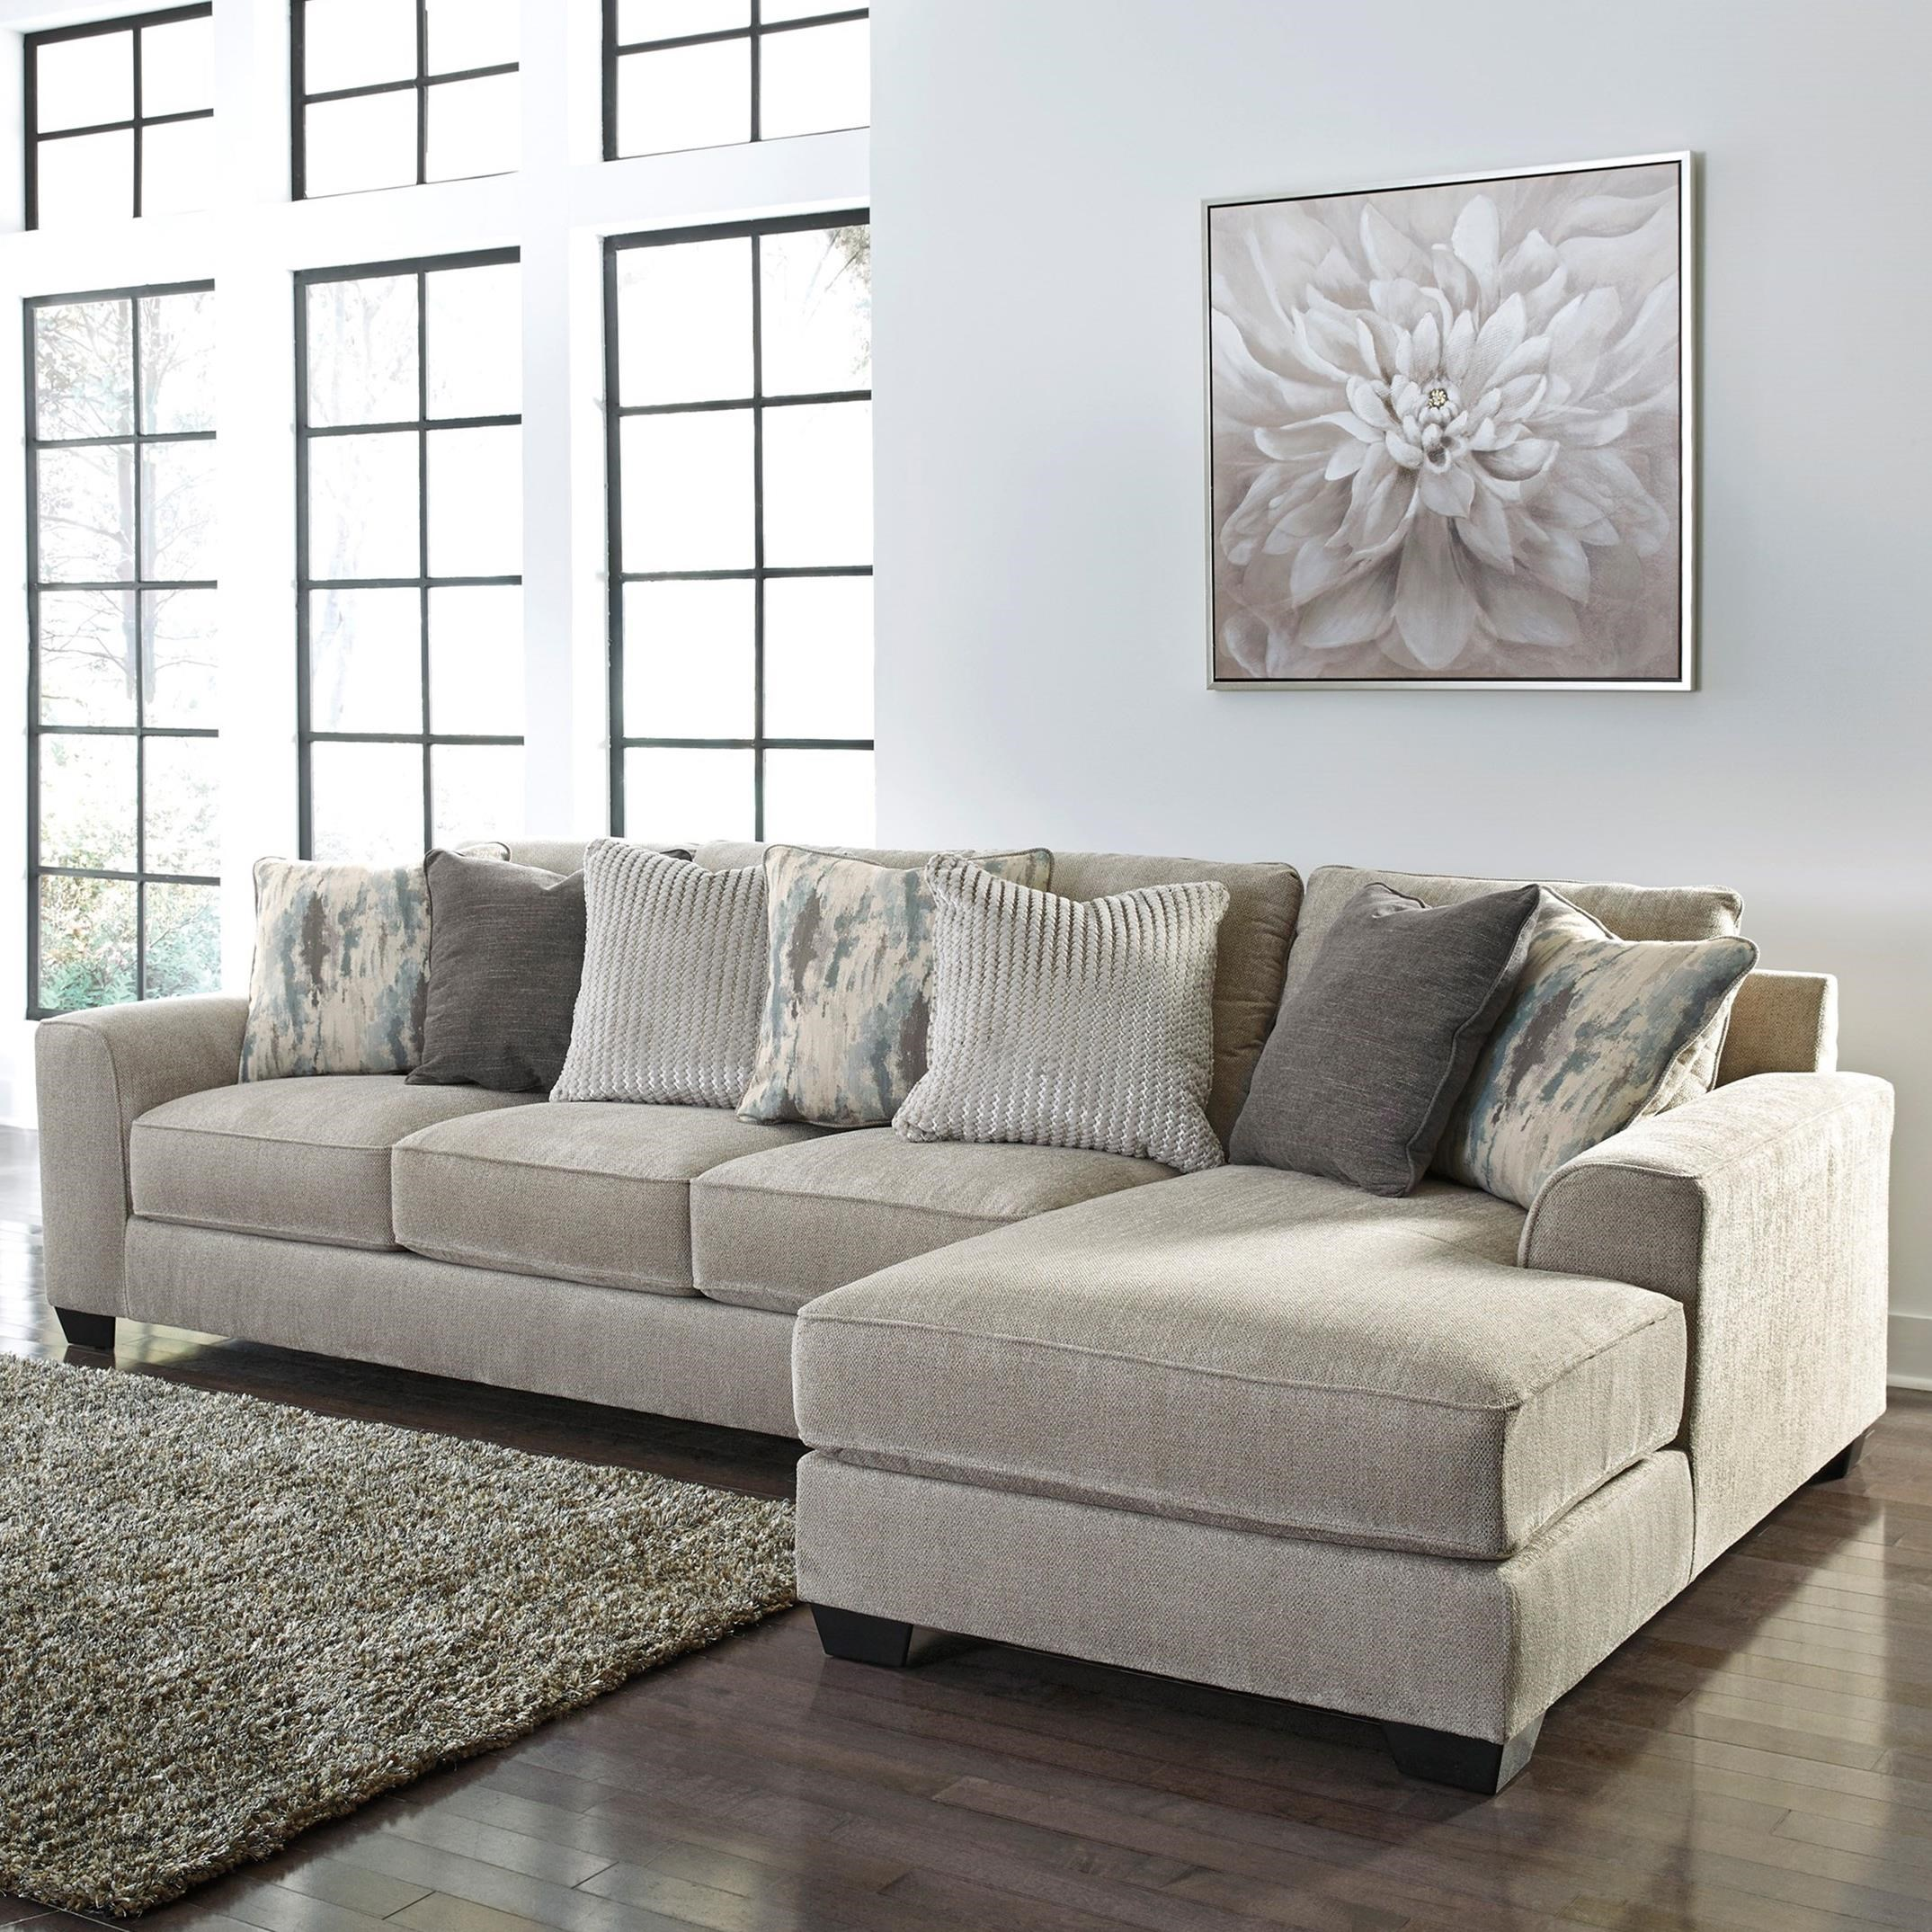 Ardsley 2-Piece Sectional with Right Chaise by Benchcraft at Virginia Furniture Market